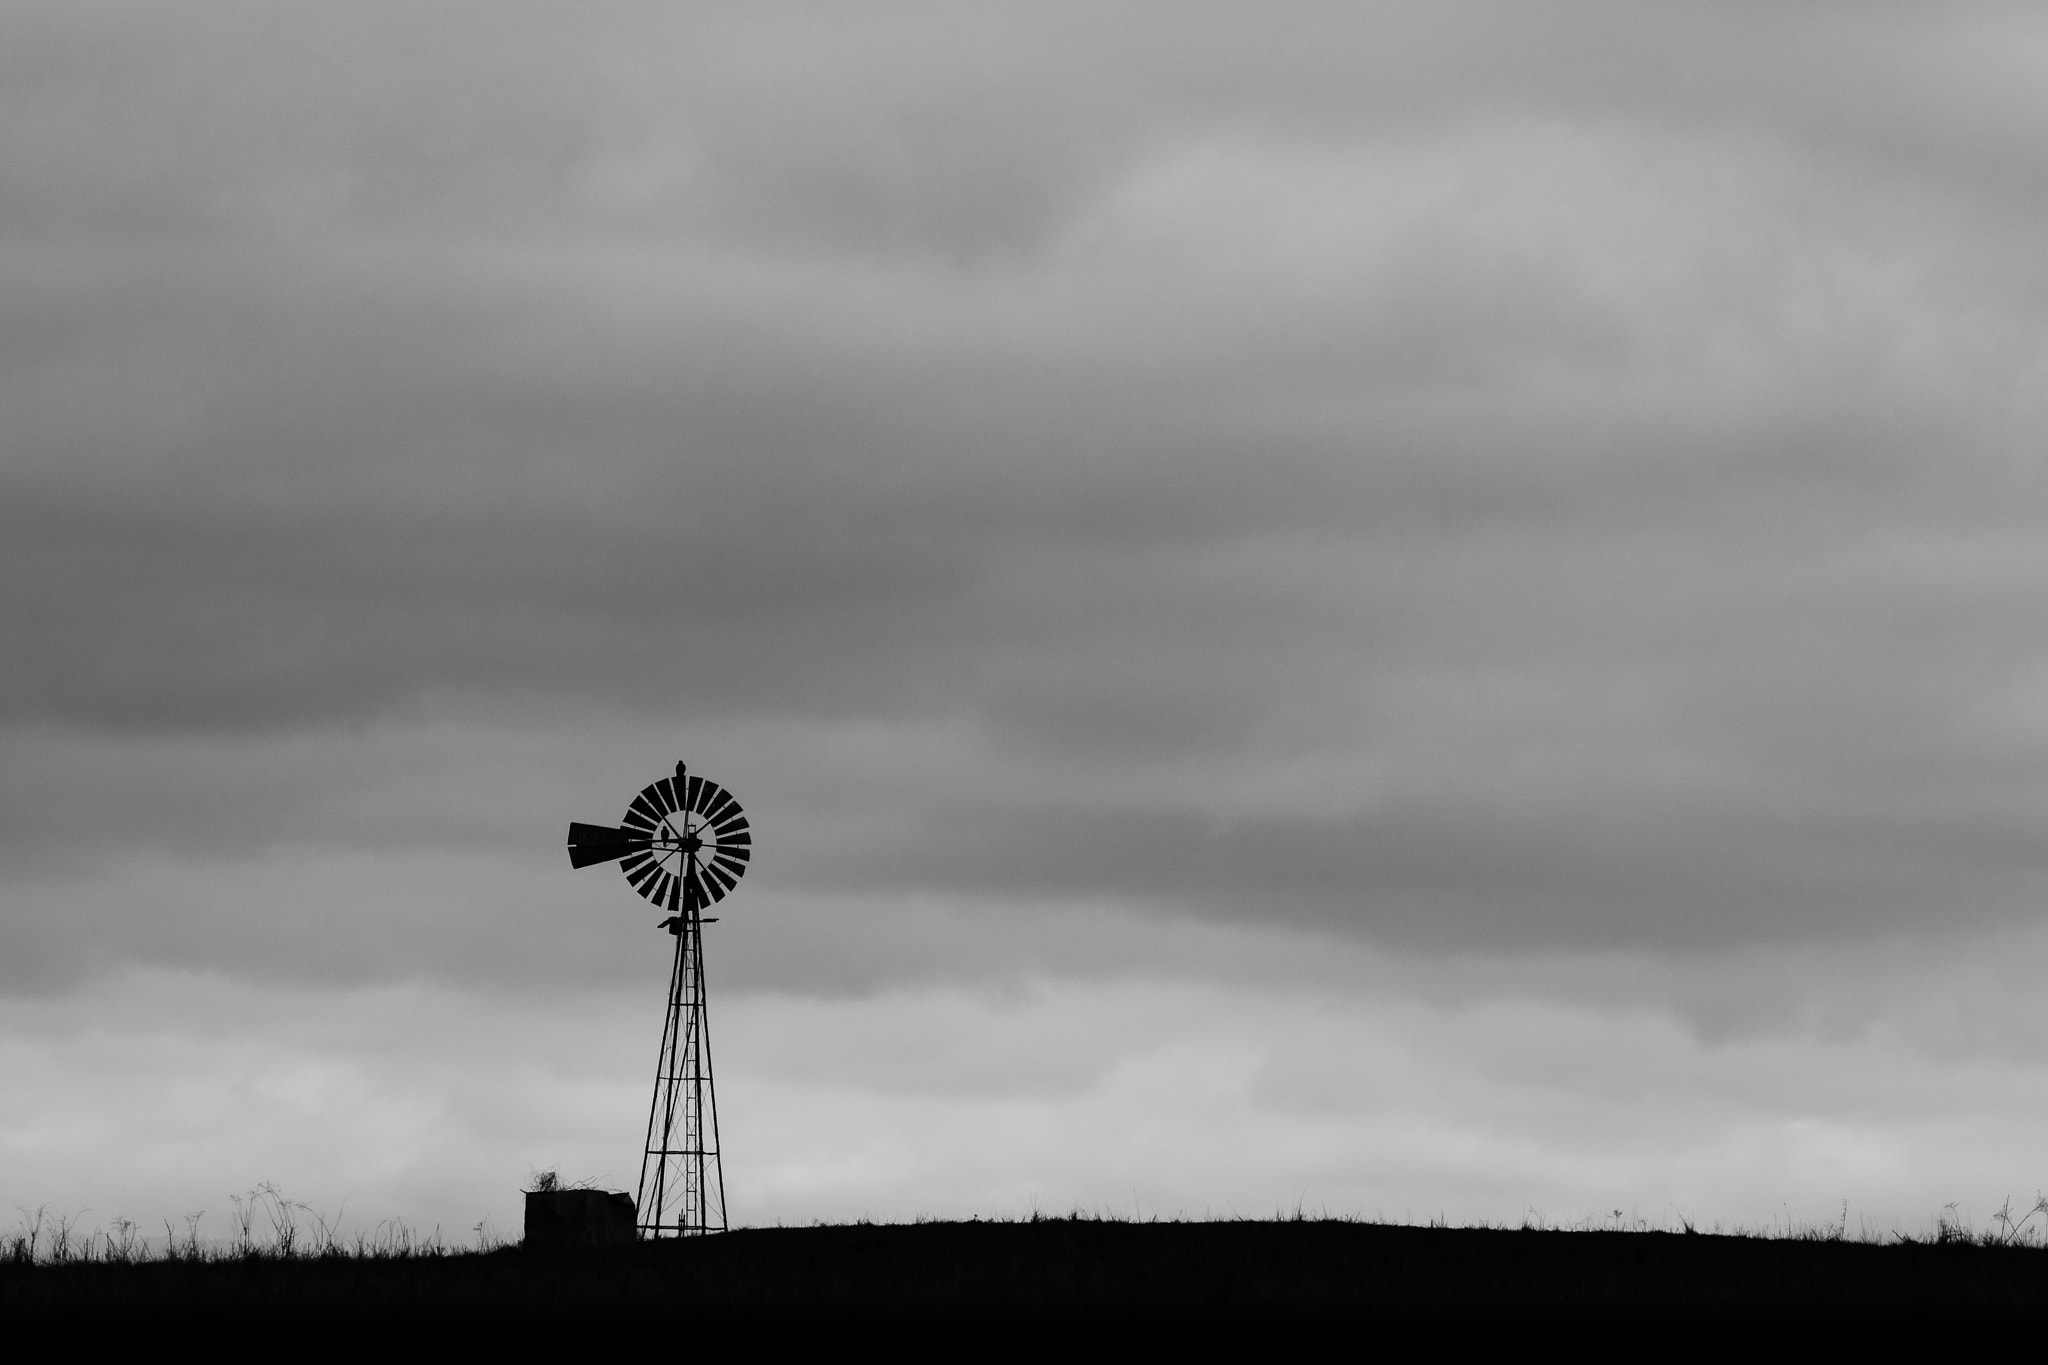 Photograph The Windmill by Jay Tayag on 500px